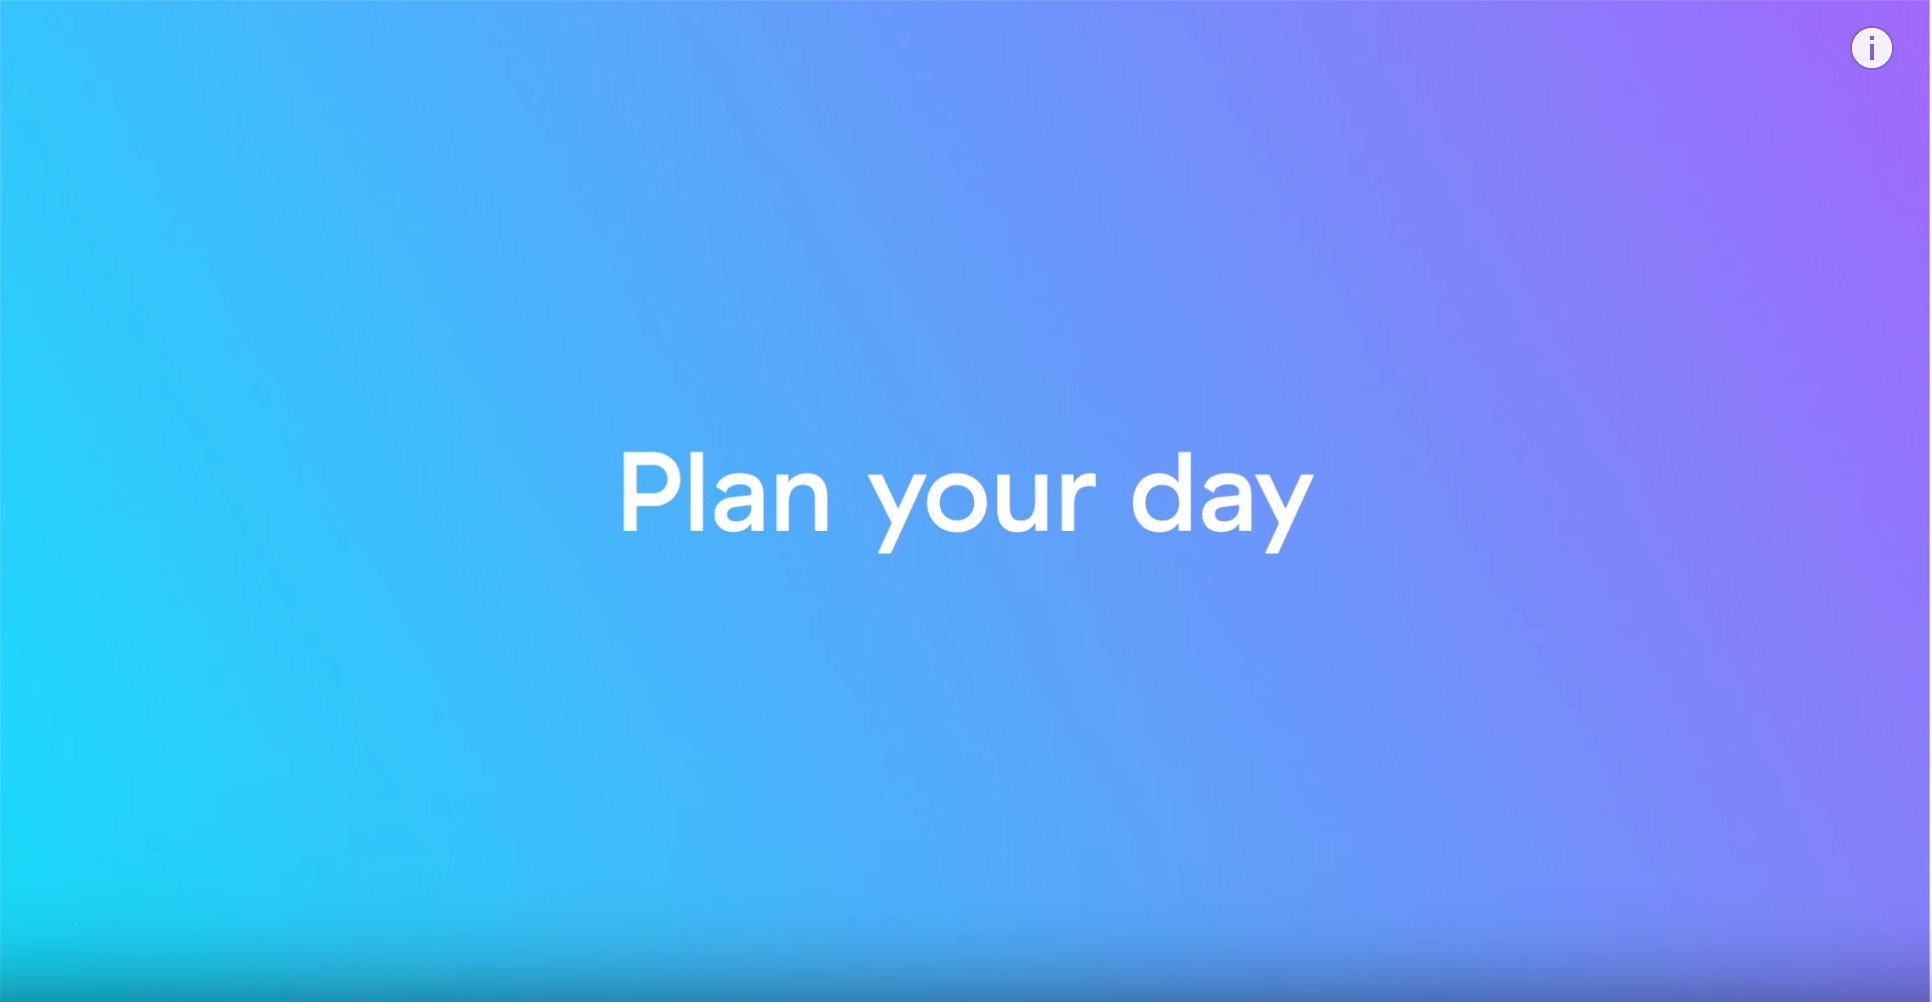 Plan your day the Asana way